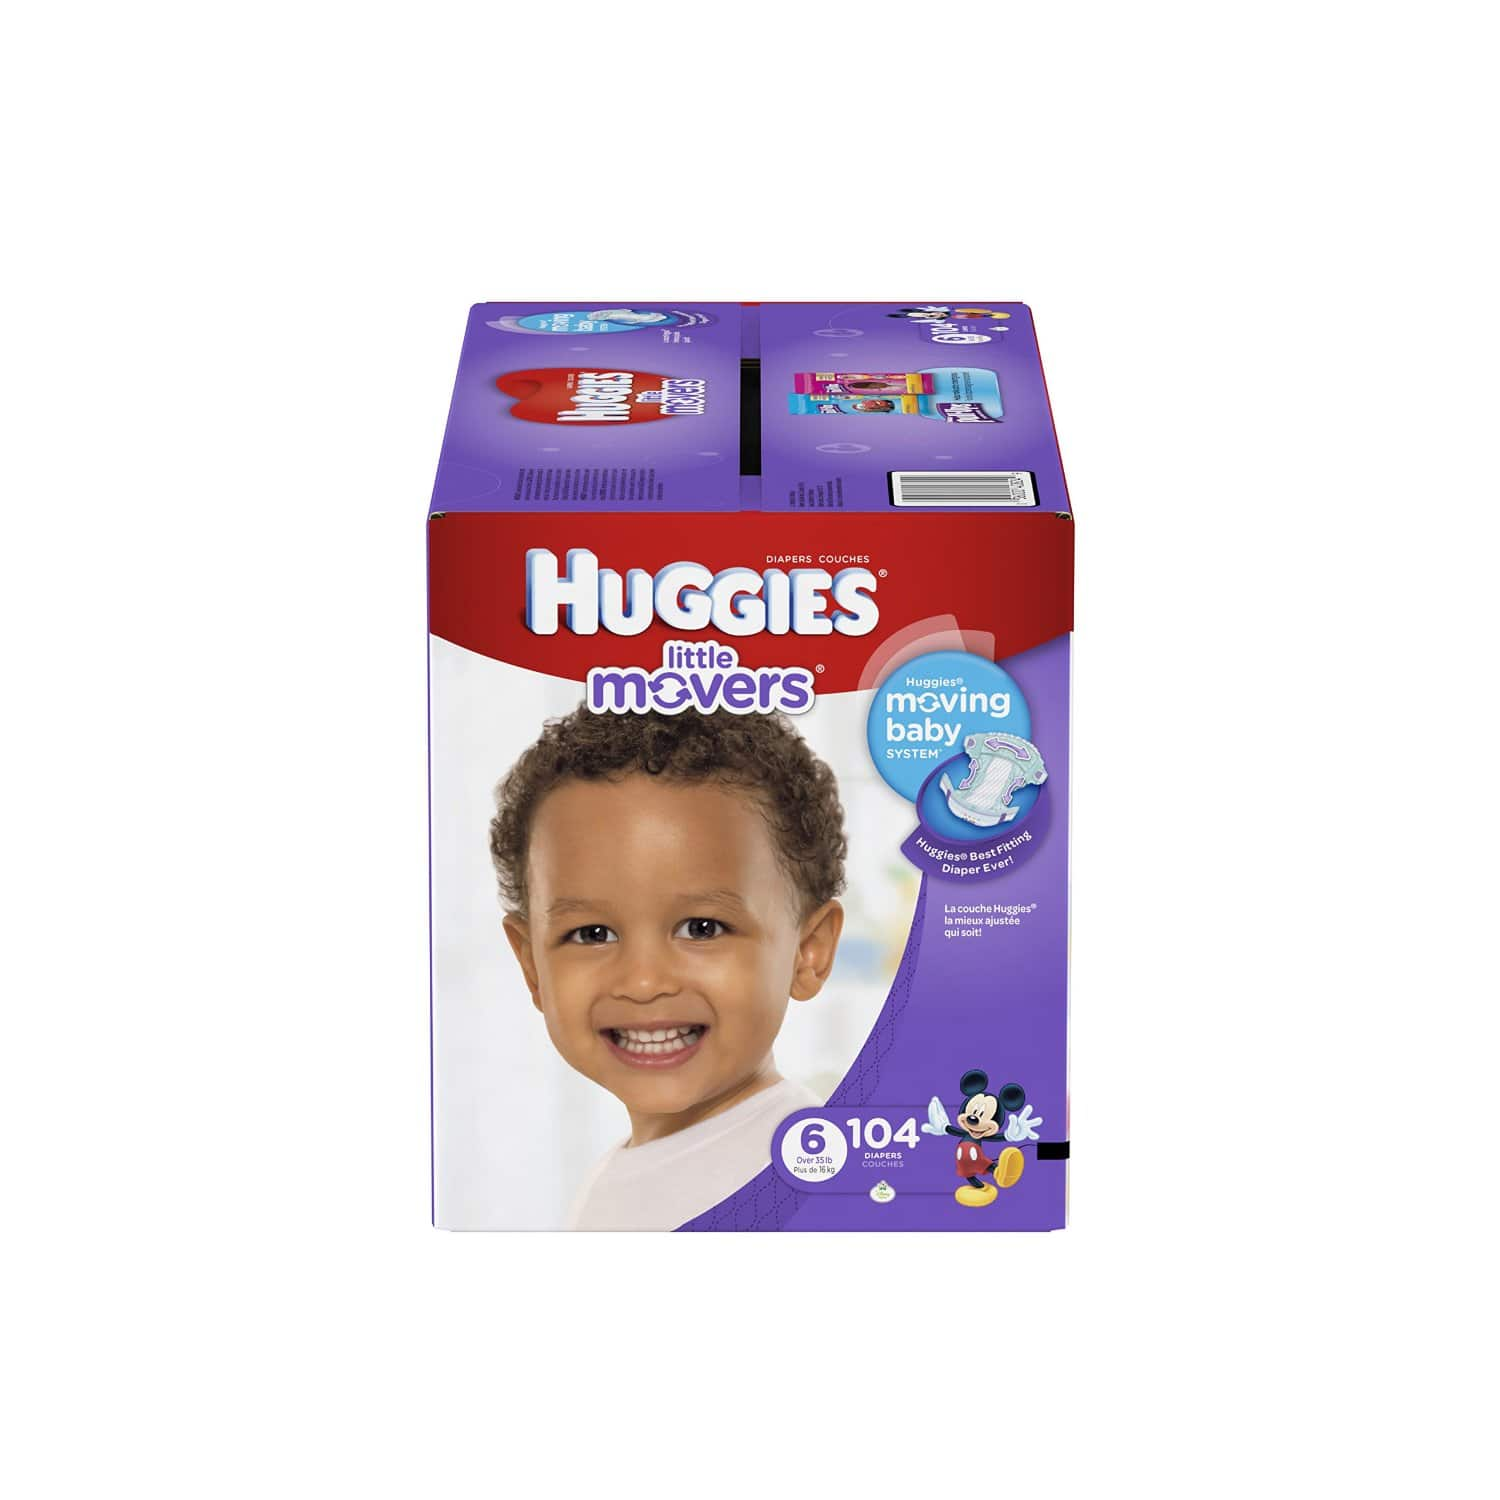 Prime Members: 104-Ct Huggies Little Movers Diapers (Size 6) & More  from $16.70 + Free Shipping